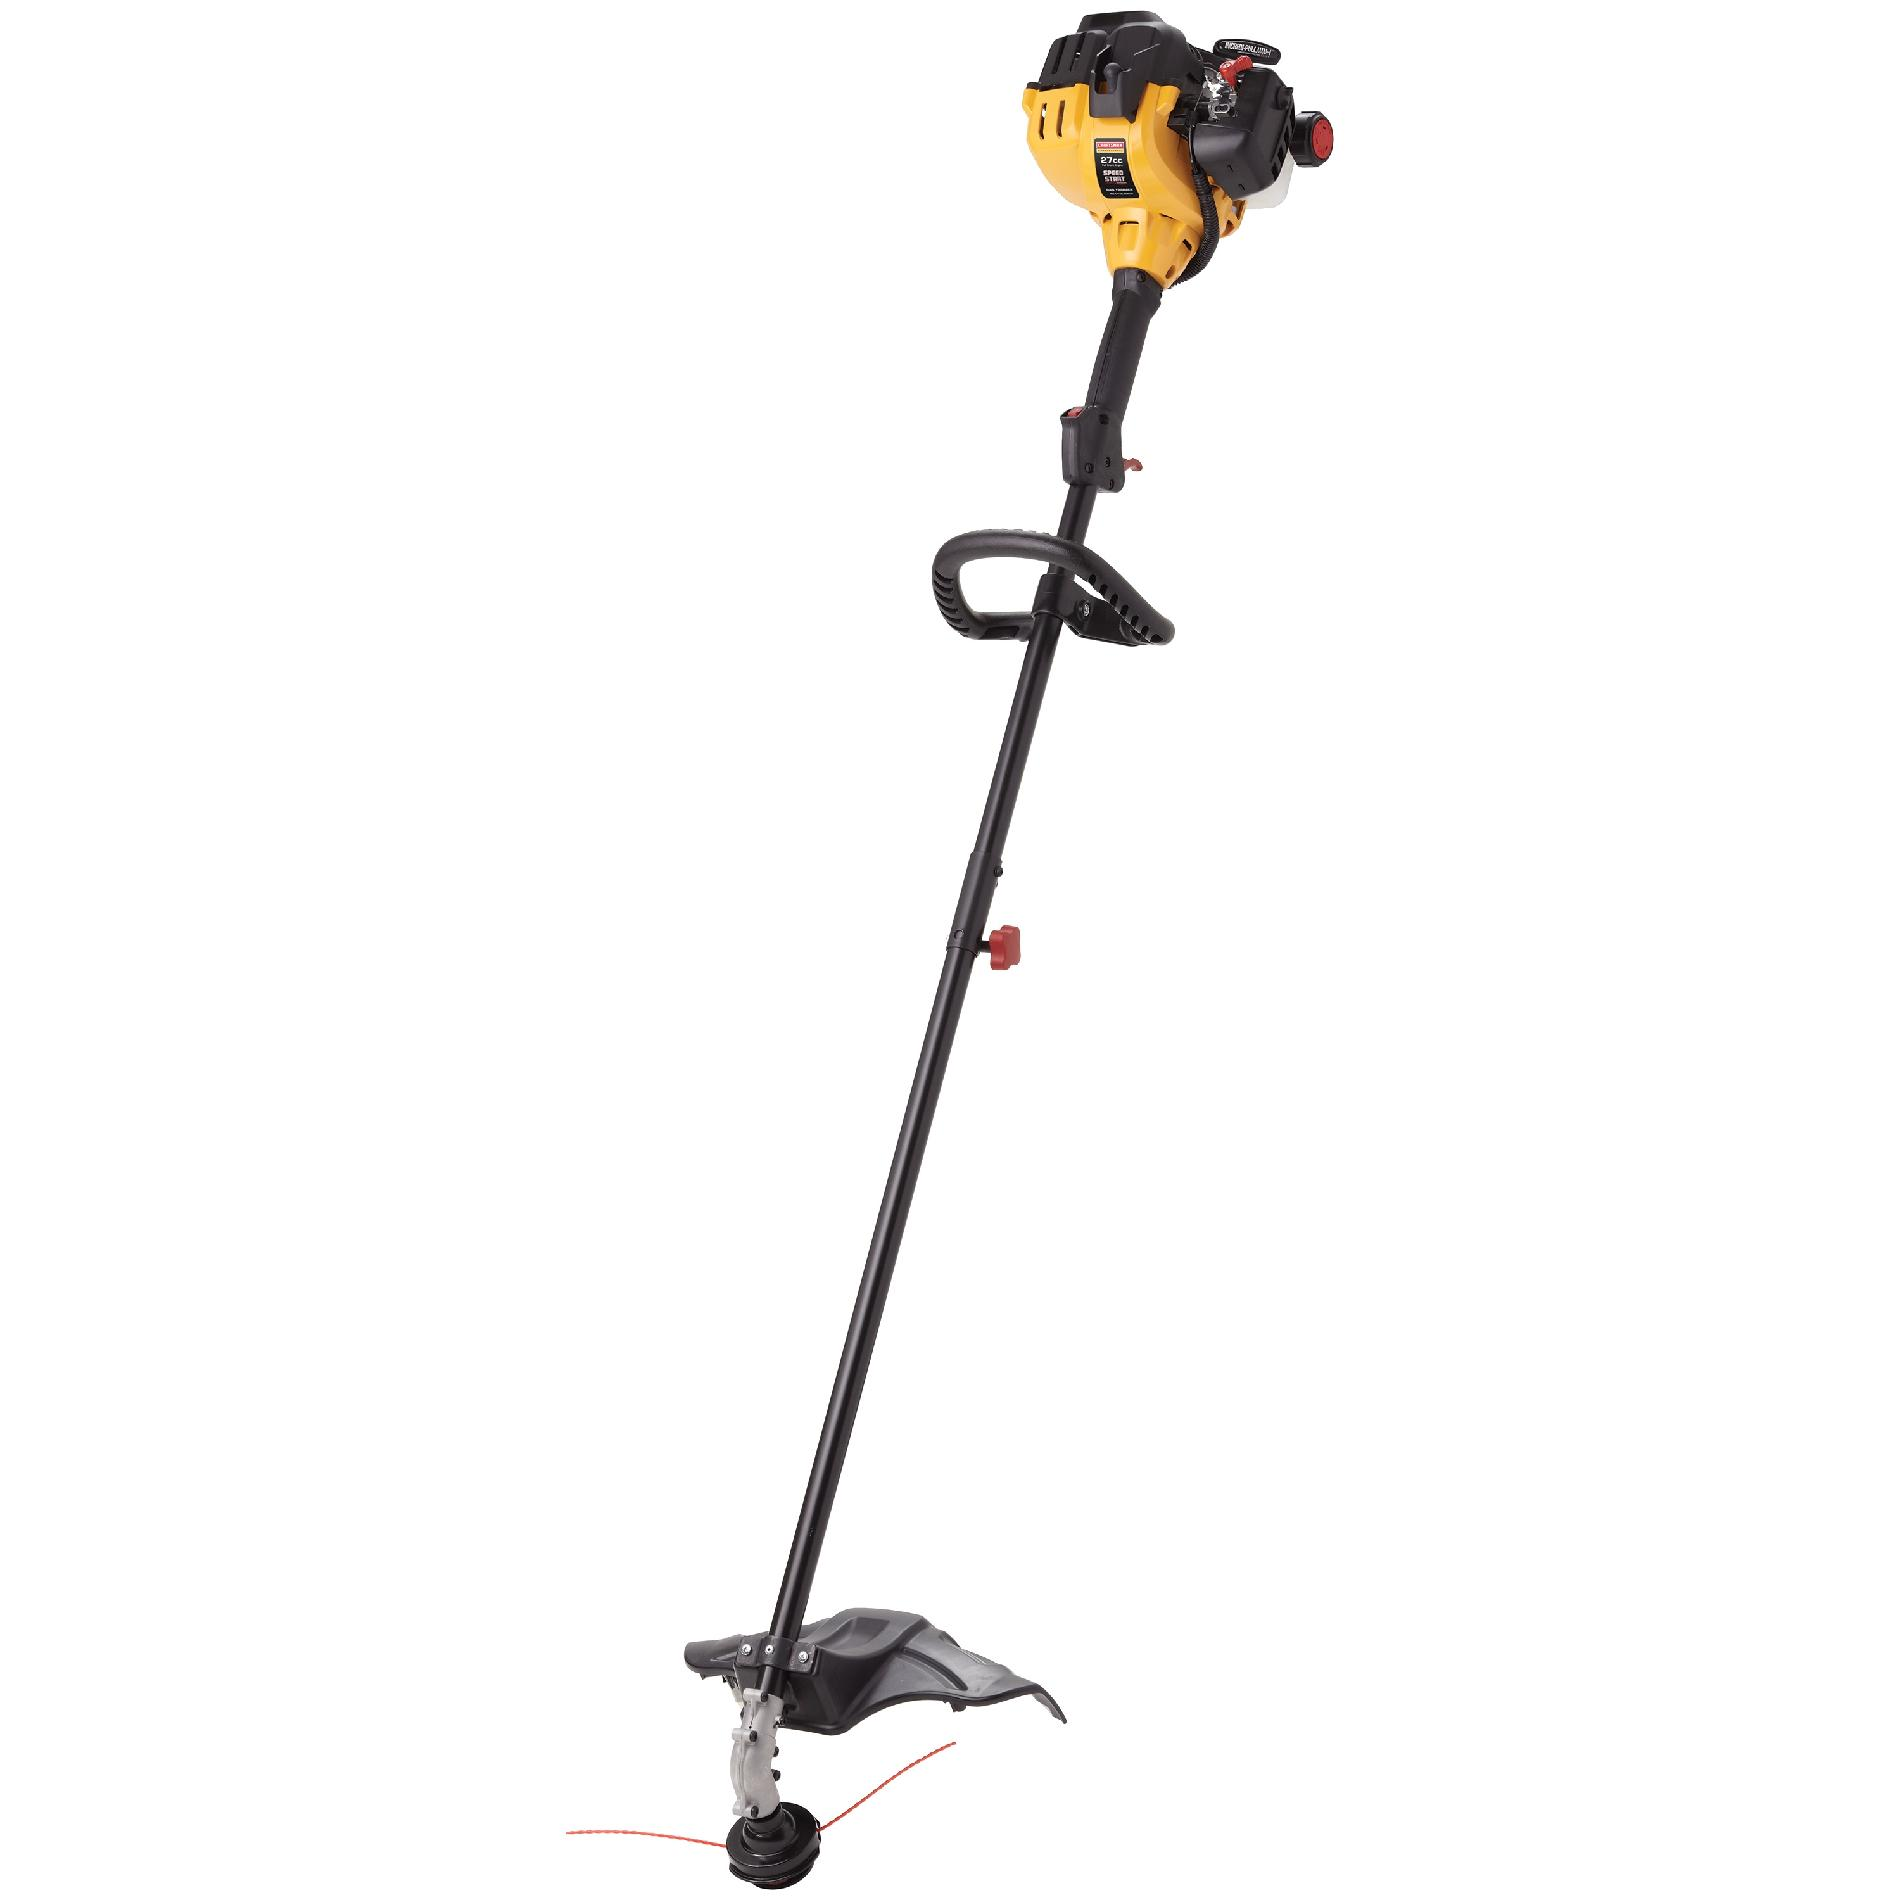 Professional-27cc-2-cycle-Straight-Shaft-Trimmer